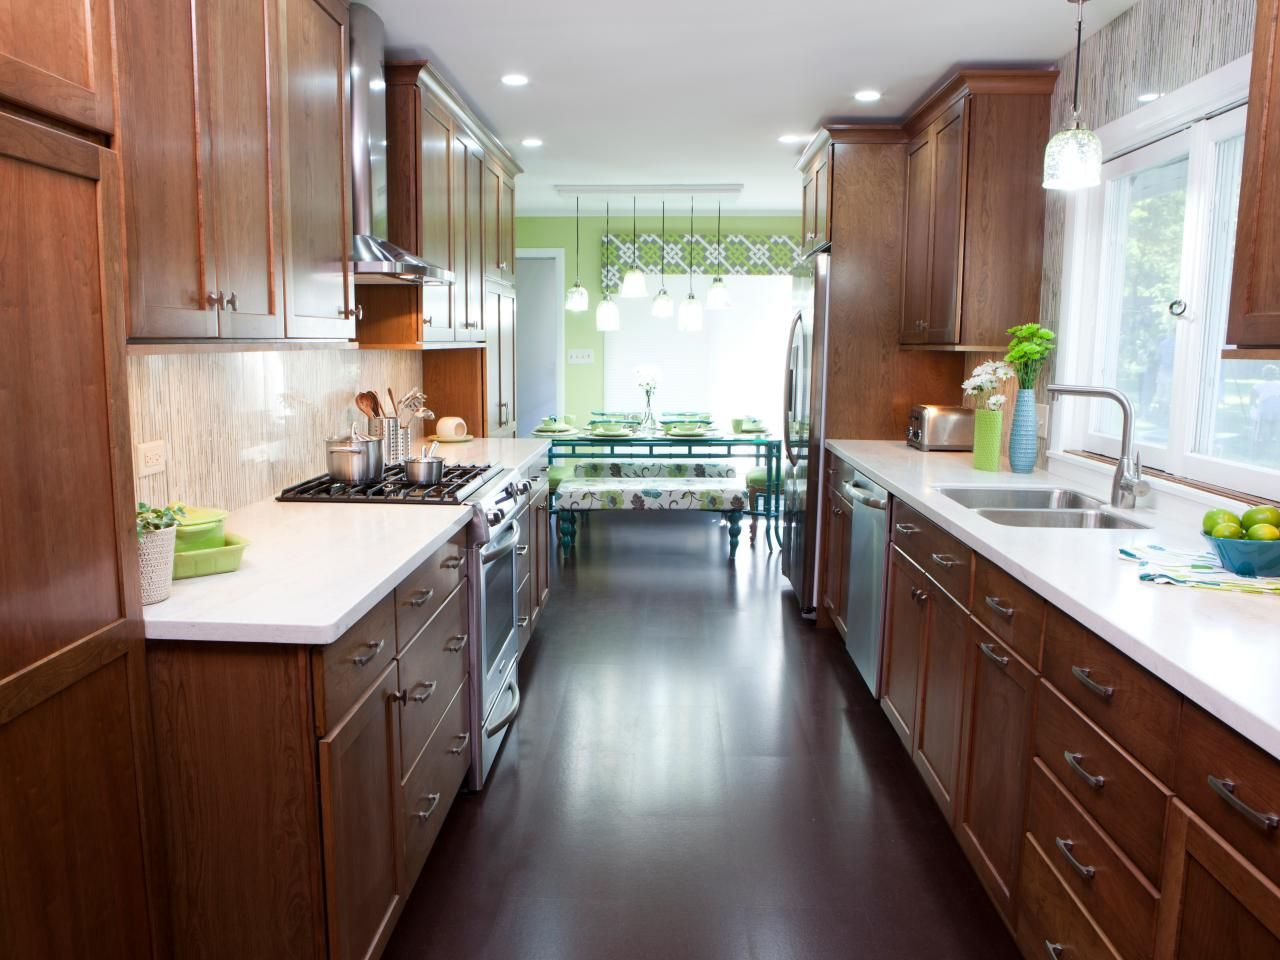 Galley kitchen designs galley kitchens galley style for Updated galley kitchen photos